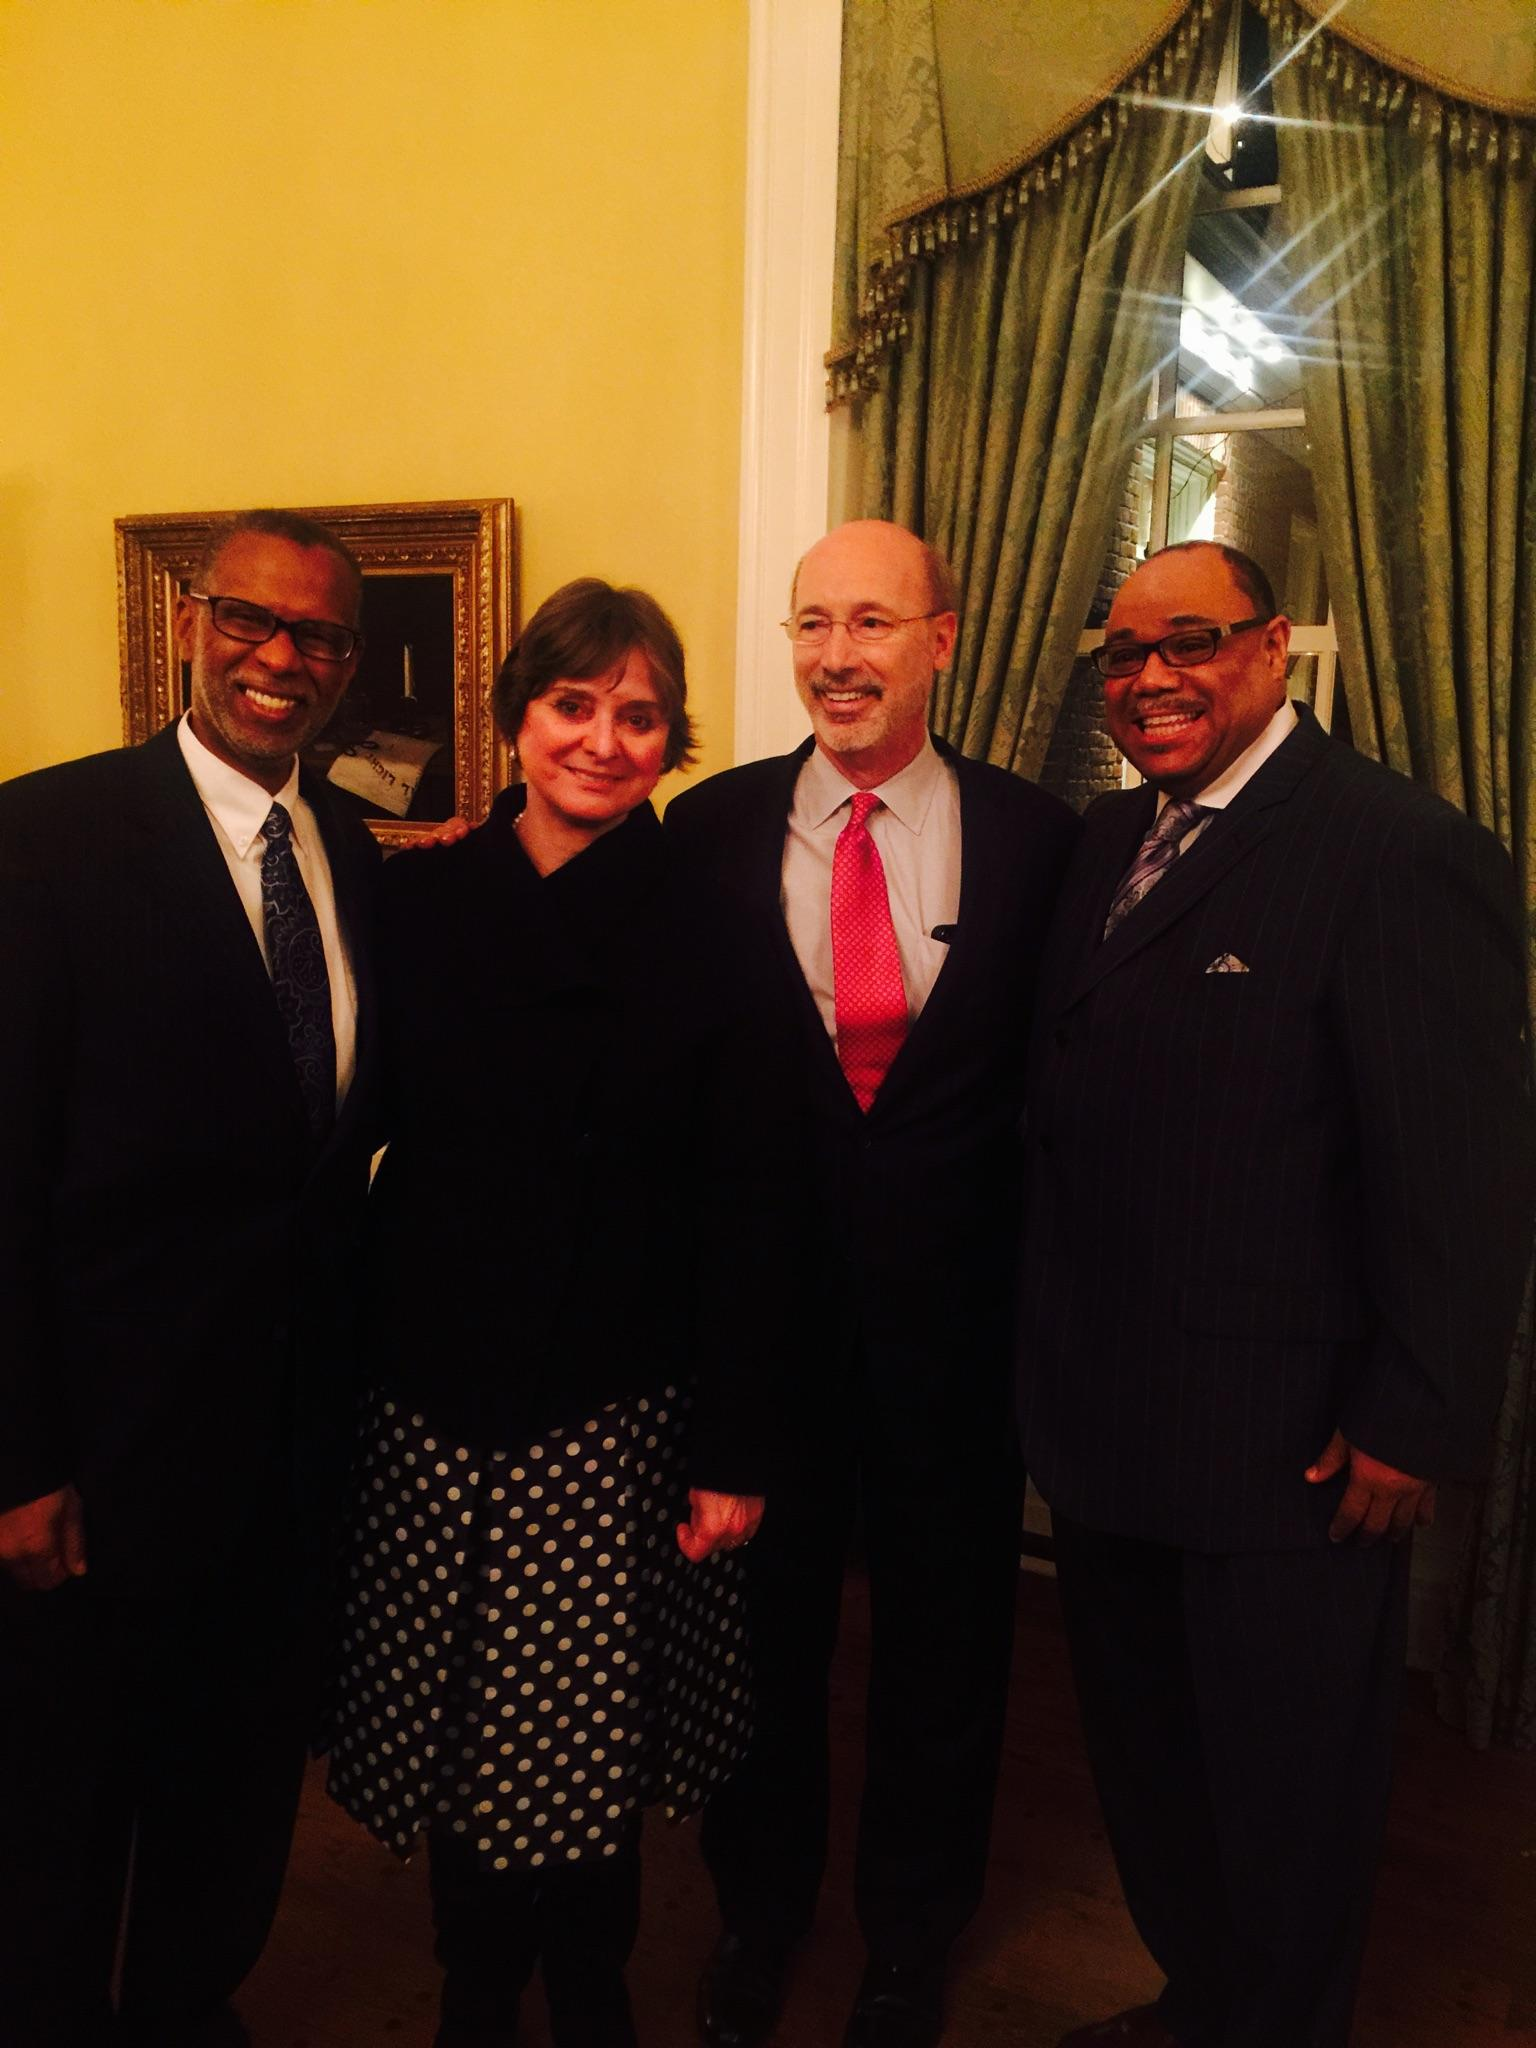 February 24, 2015: My Chief of Staff, Dwight Lewis, and I joined Governor Tom Wolf and First Lady Frances Wolf to celebrate Black History Month at the Governor's Mansion.